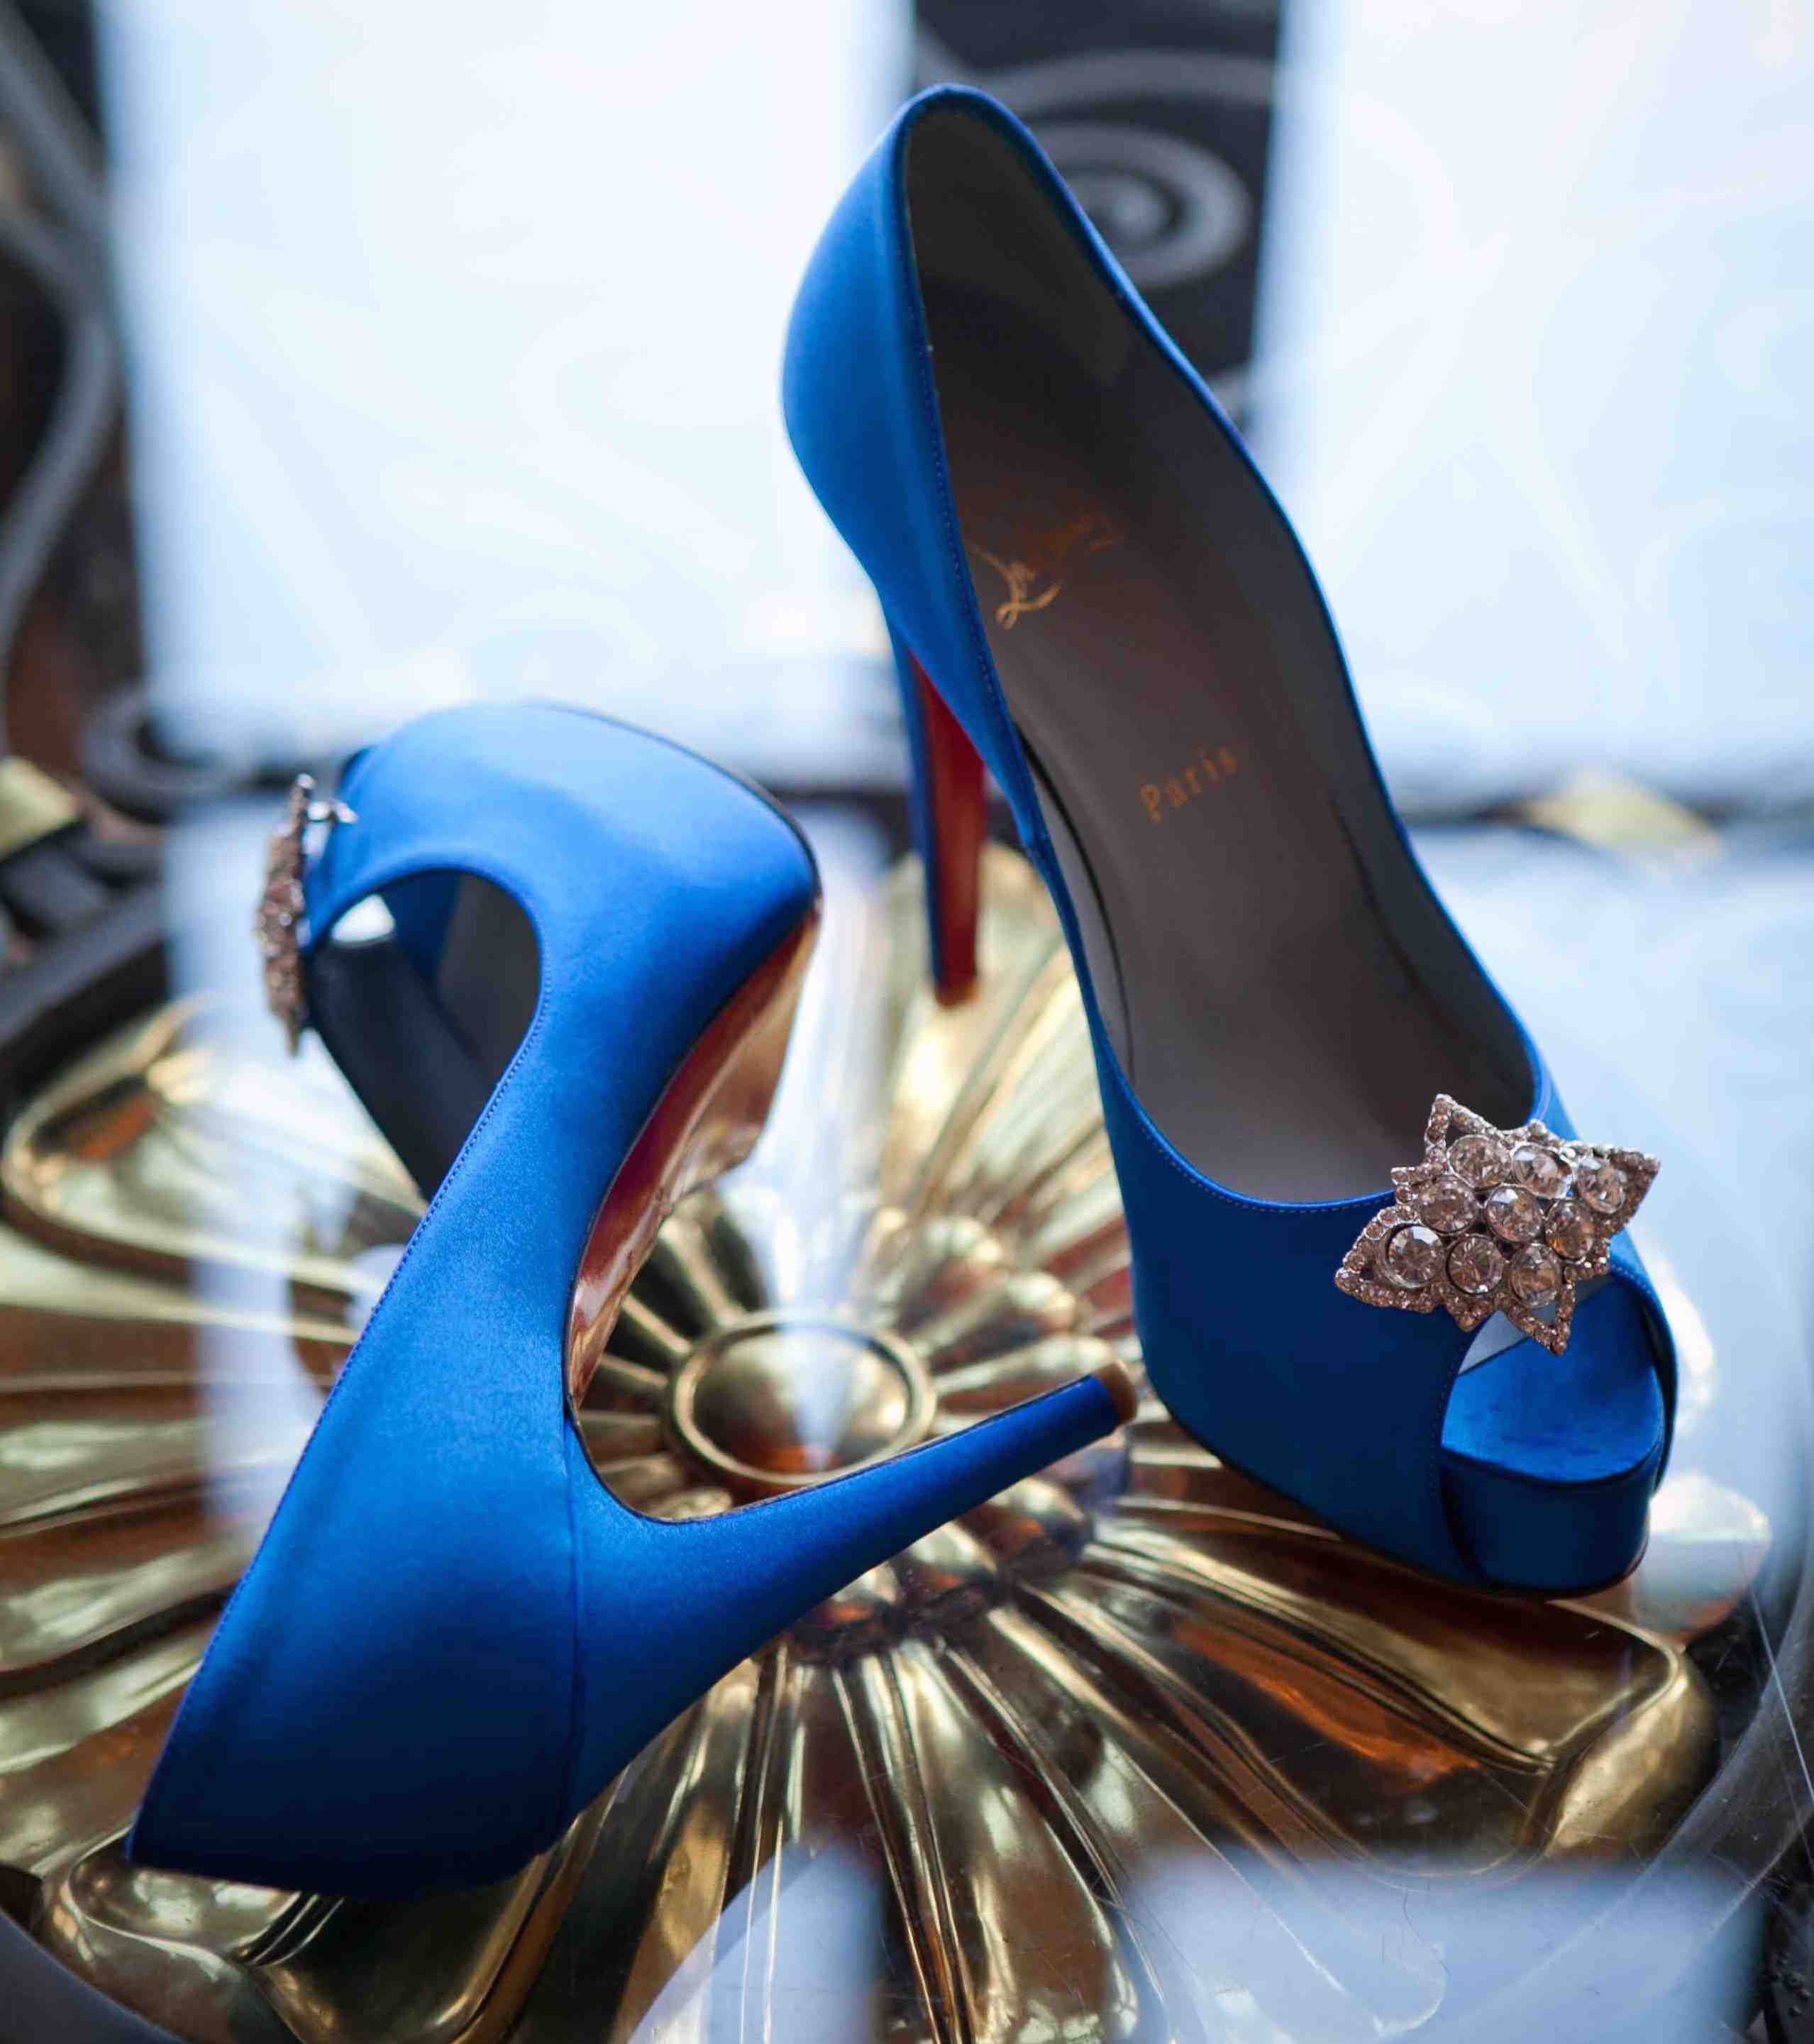 Blue peep toe wedding shoes with crystals